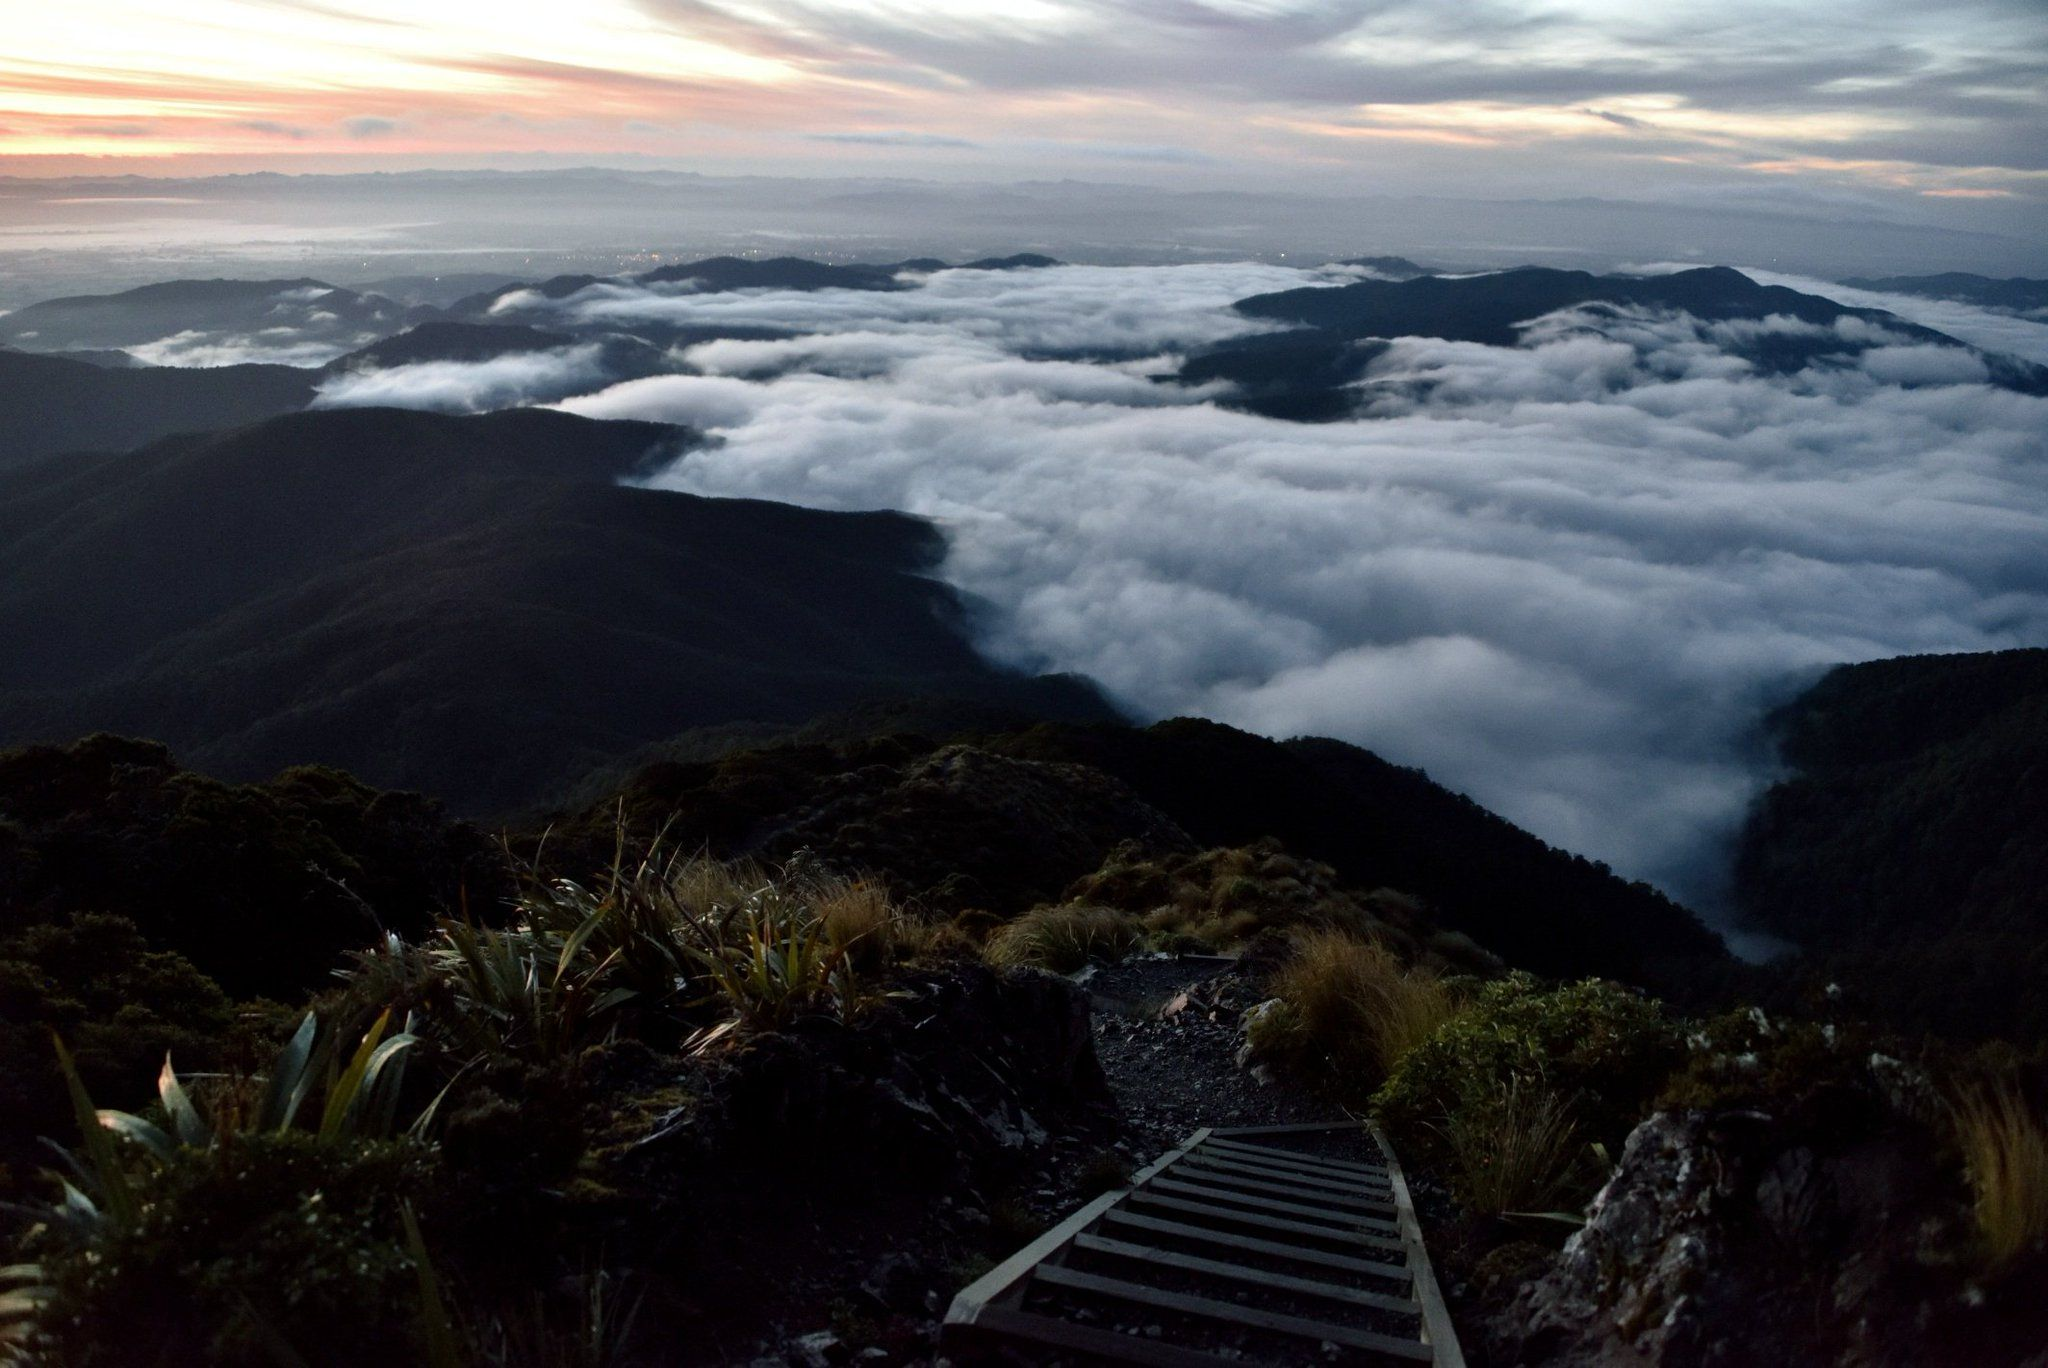 """Seán Gillespie on Twitter: """"One of the many reasons I love hiking: siting on a stairway above the clouds at sunrise. -- Mt Holdsworth, Tararua Ranges, New Zealand https://t.co/gfBVQNGcaU"""" #hiking"""